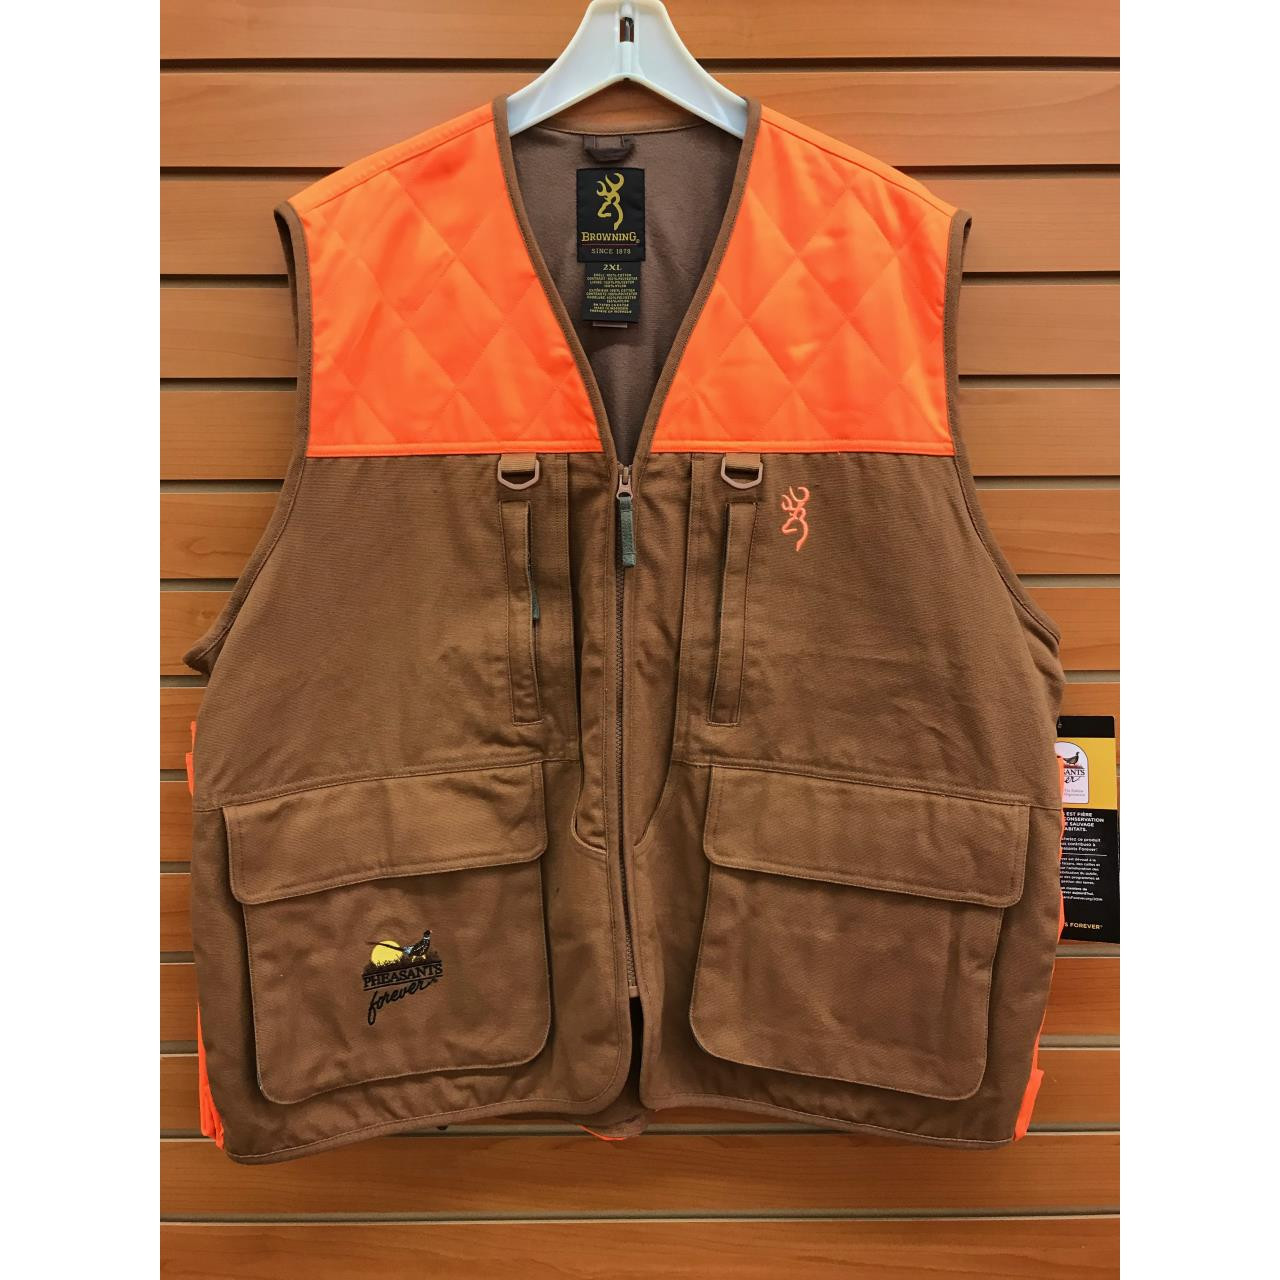 34d52a0f40023 ... Men's Hunting Clothing · Vests & Blaze Orange; Browning Pheasants  Forever Vest. Browning Pheasants Forever Vest - 023614046097